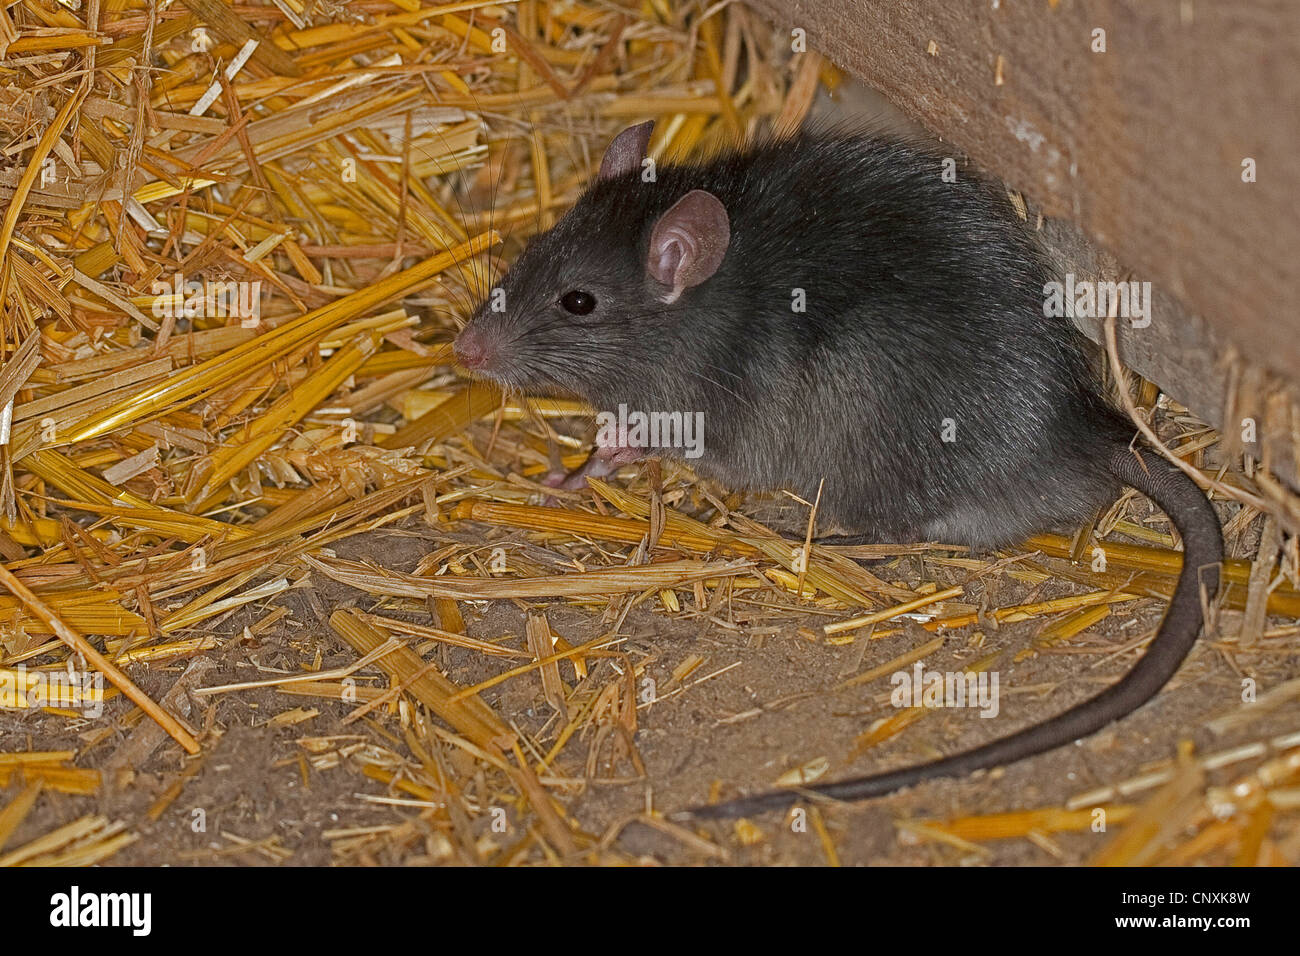 black rat, roof rat, house rat, ship rat (Rattus rattus), in a stable with straw, Germany - Stock Image